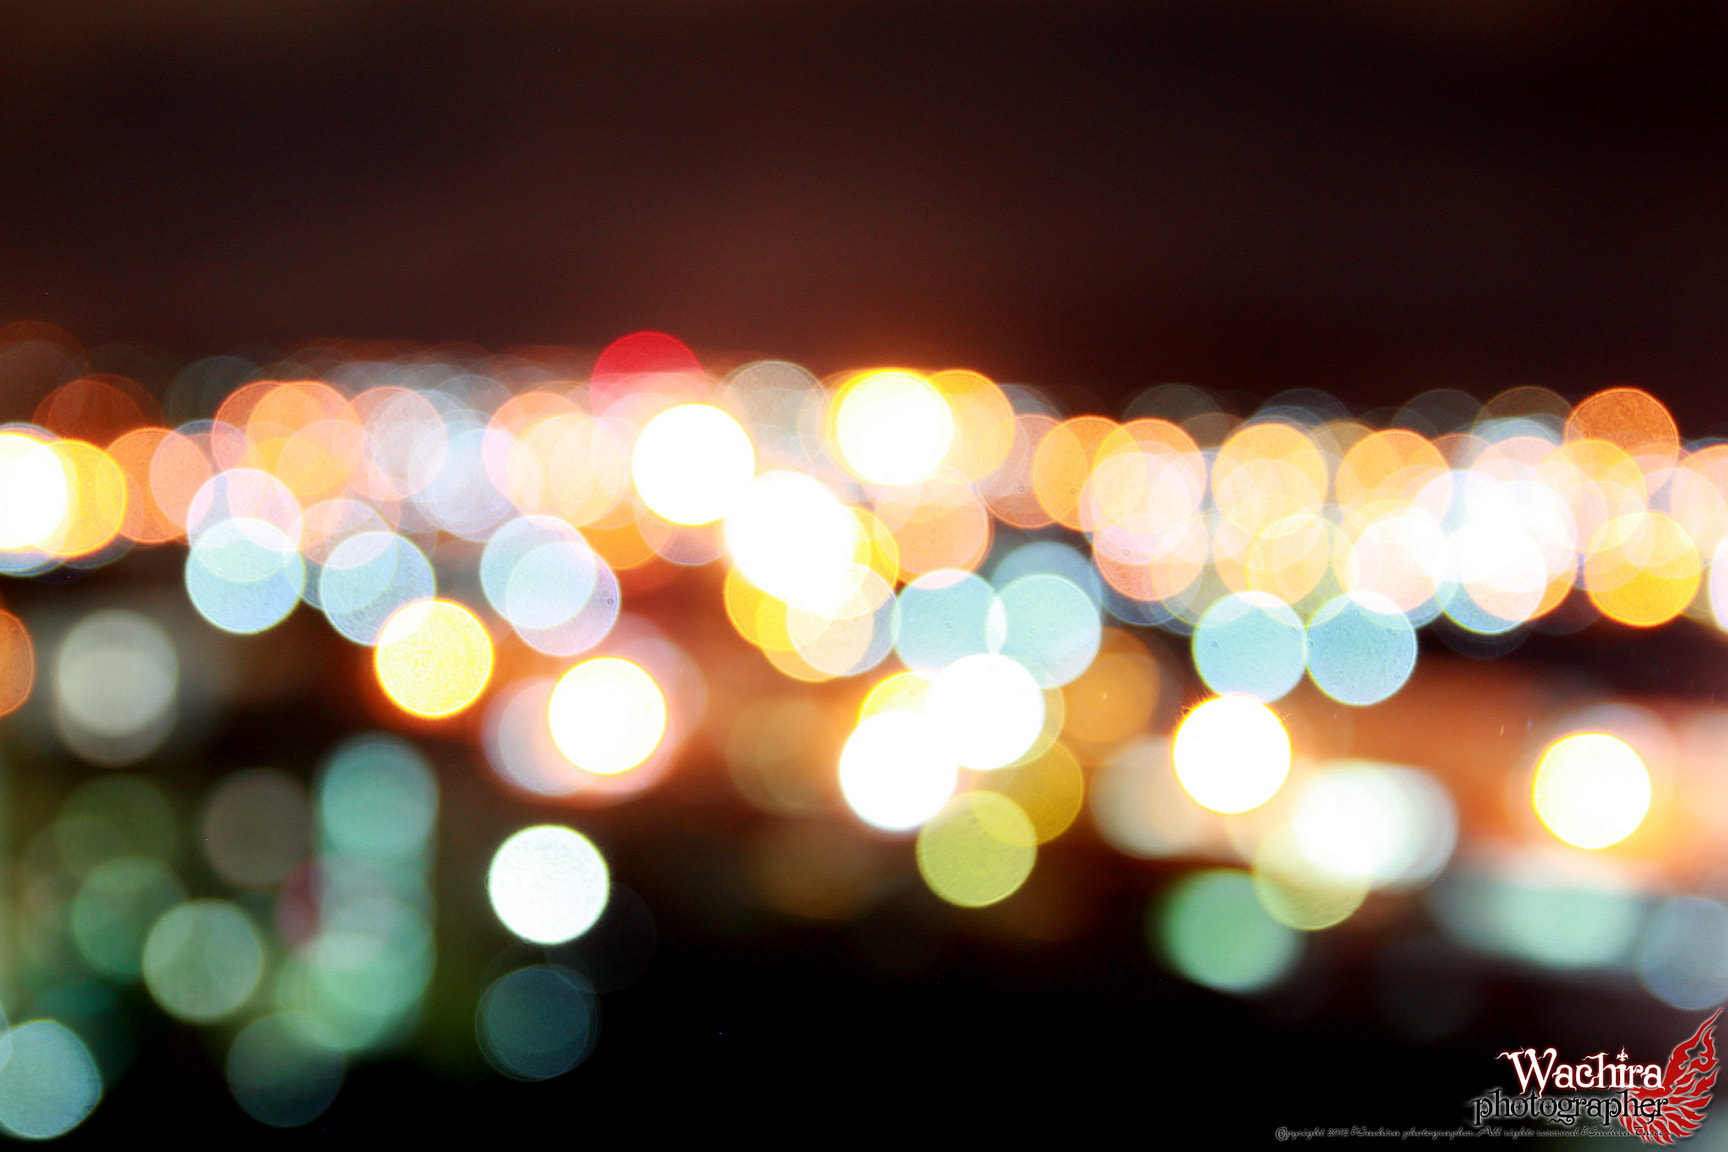 Photograph  The Light by Wachira Tasee on 500px